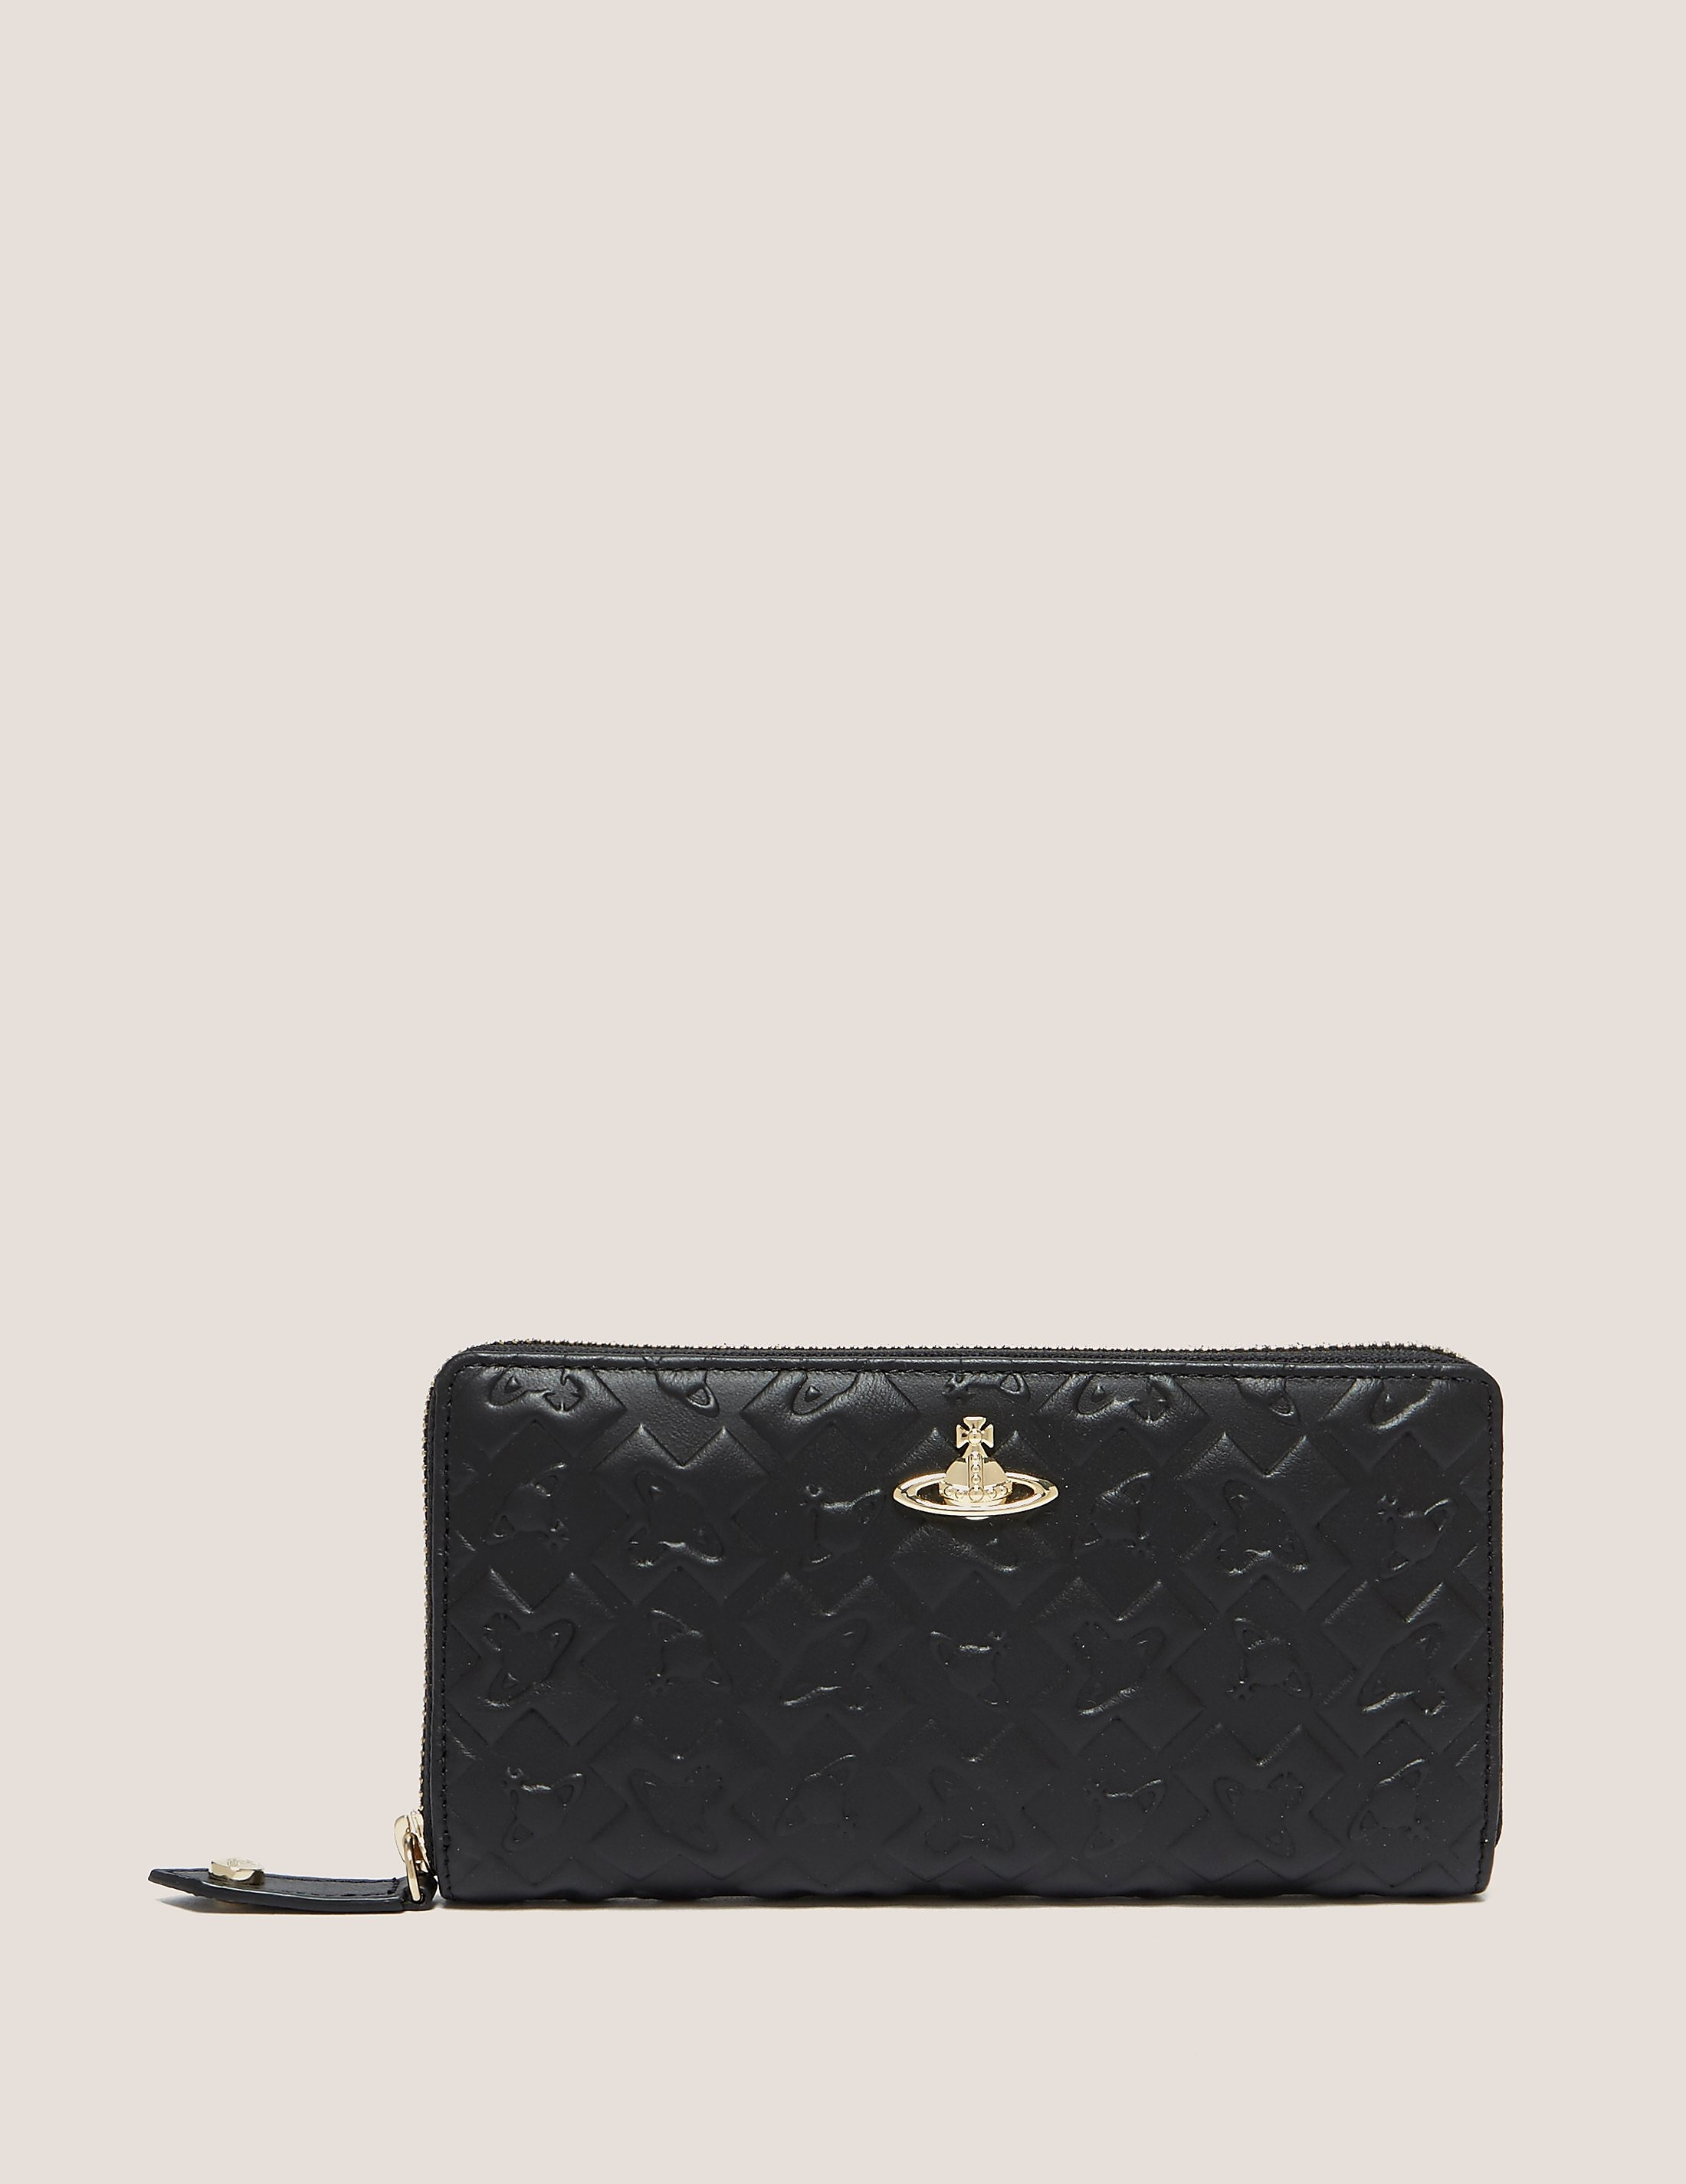 Vivienne Westwood Harrow Purse